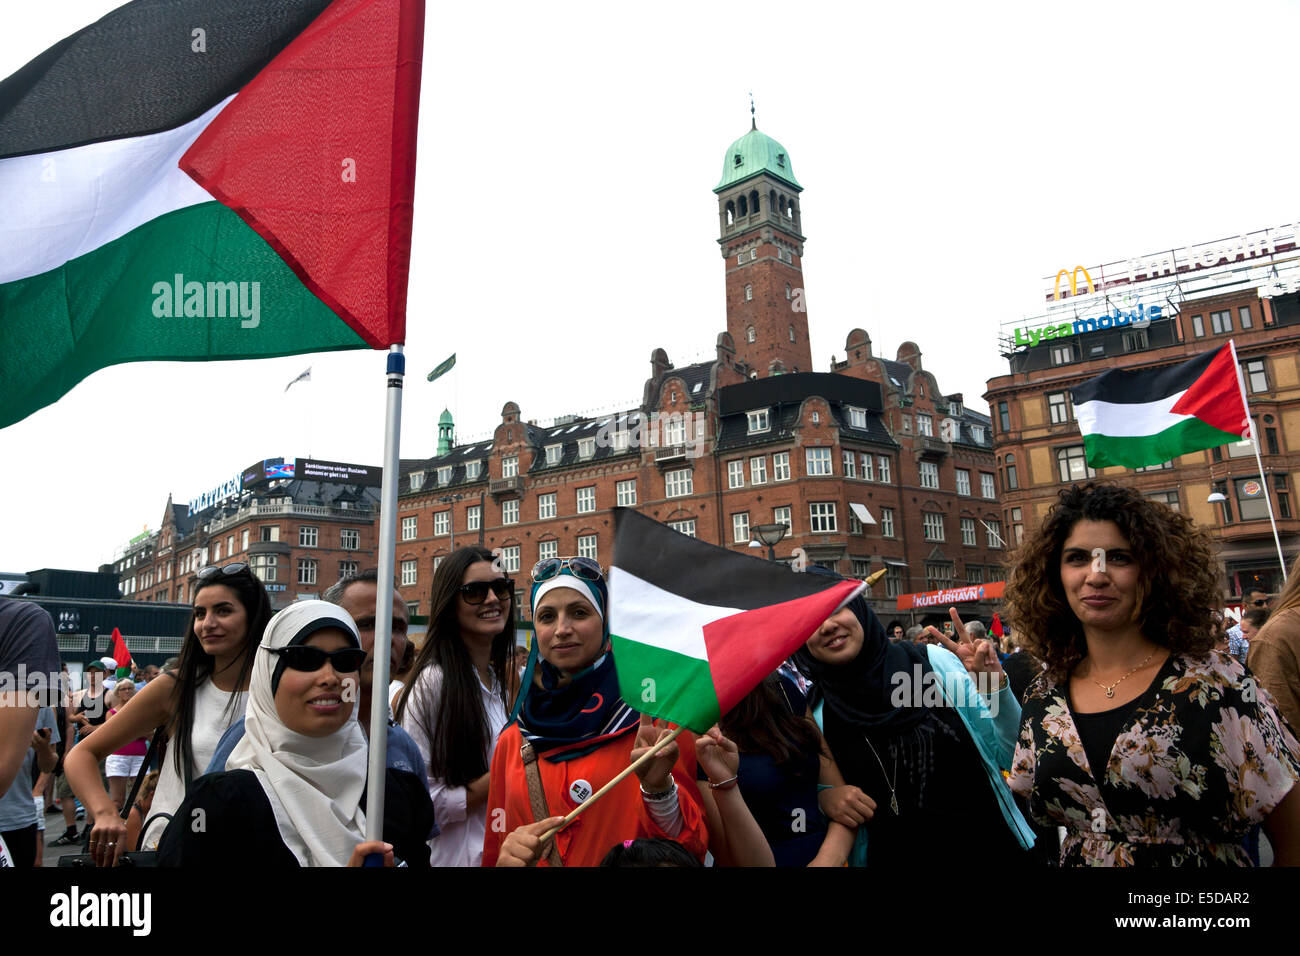 Copenhagen, Denmark. 28th July, 2014. Some 4 – 5000 people gather at Copenhagen town hall square this afternoon - Stock Image